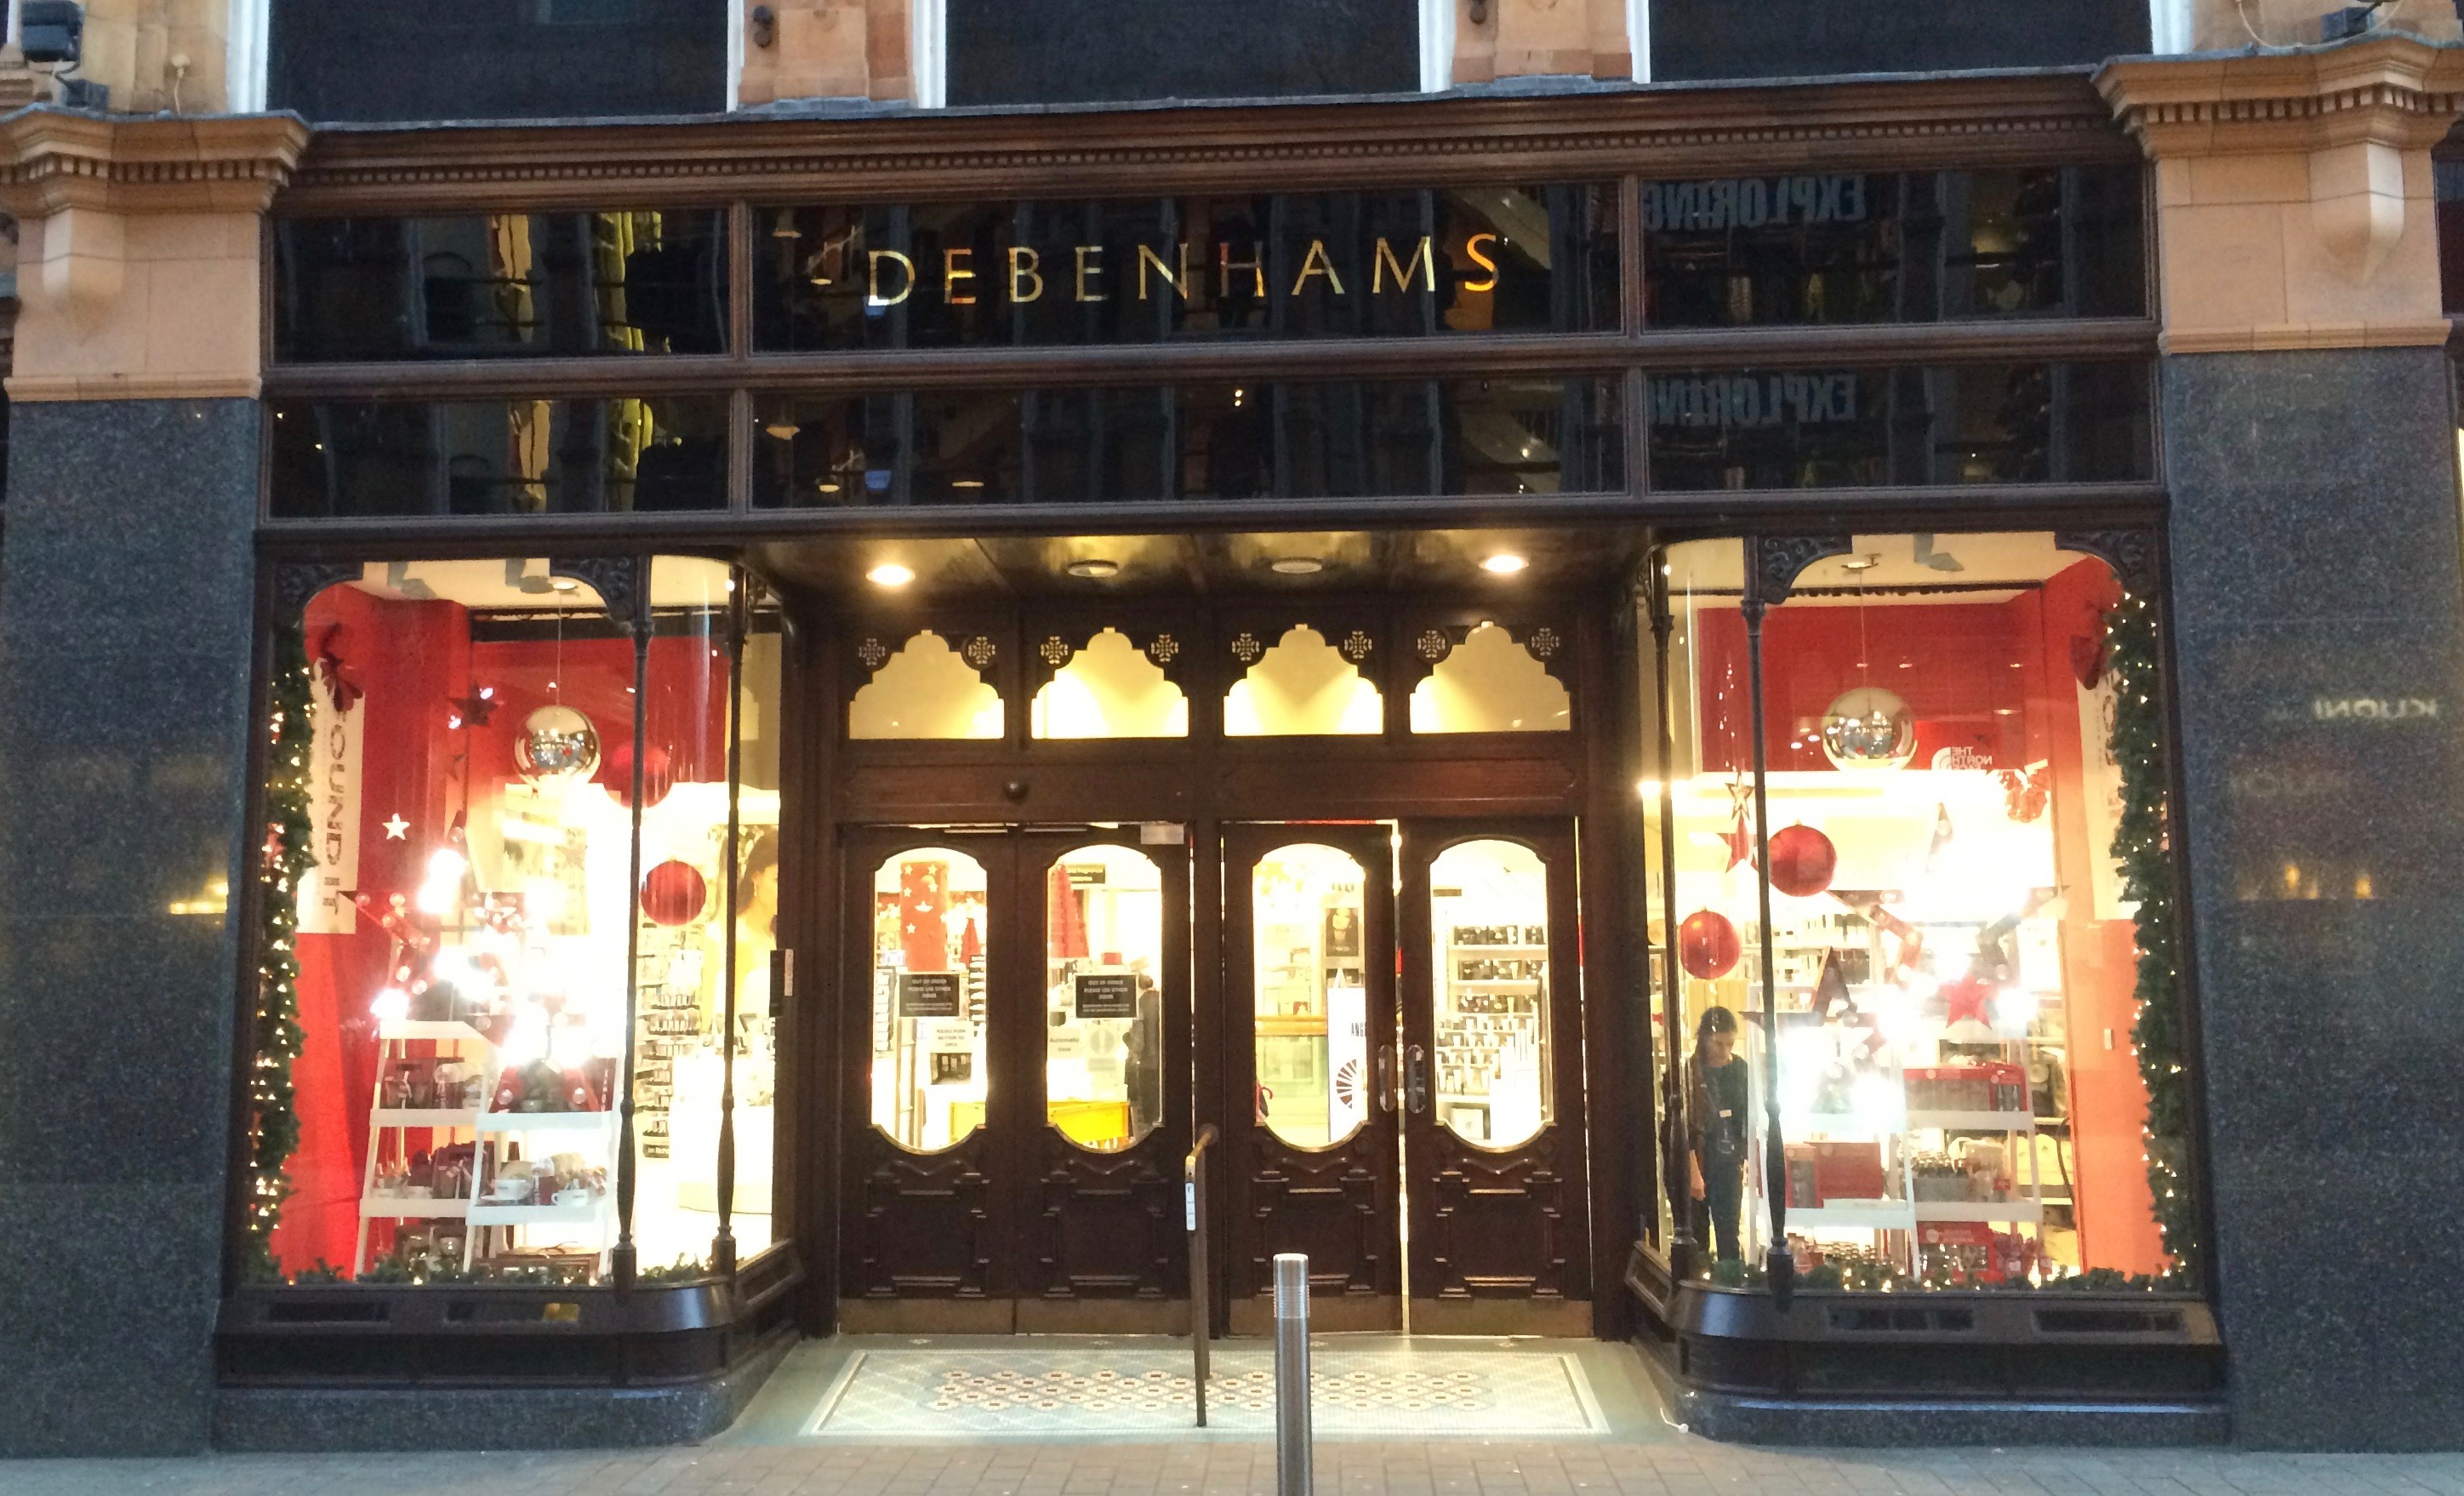 A quick visit to Debenhams in Leeds for some Christmas shopping